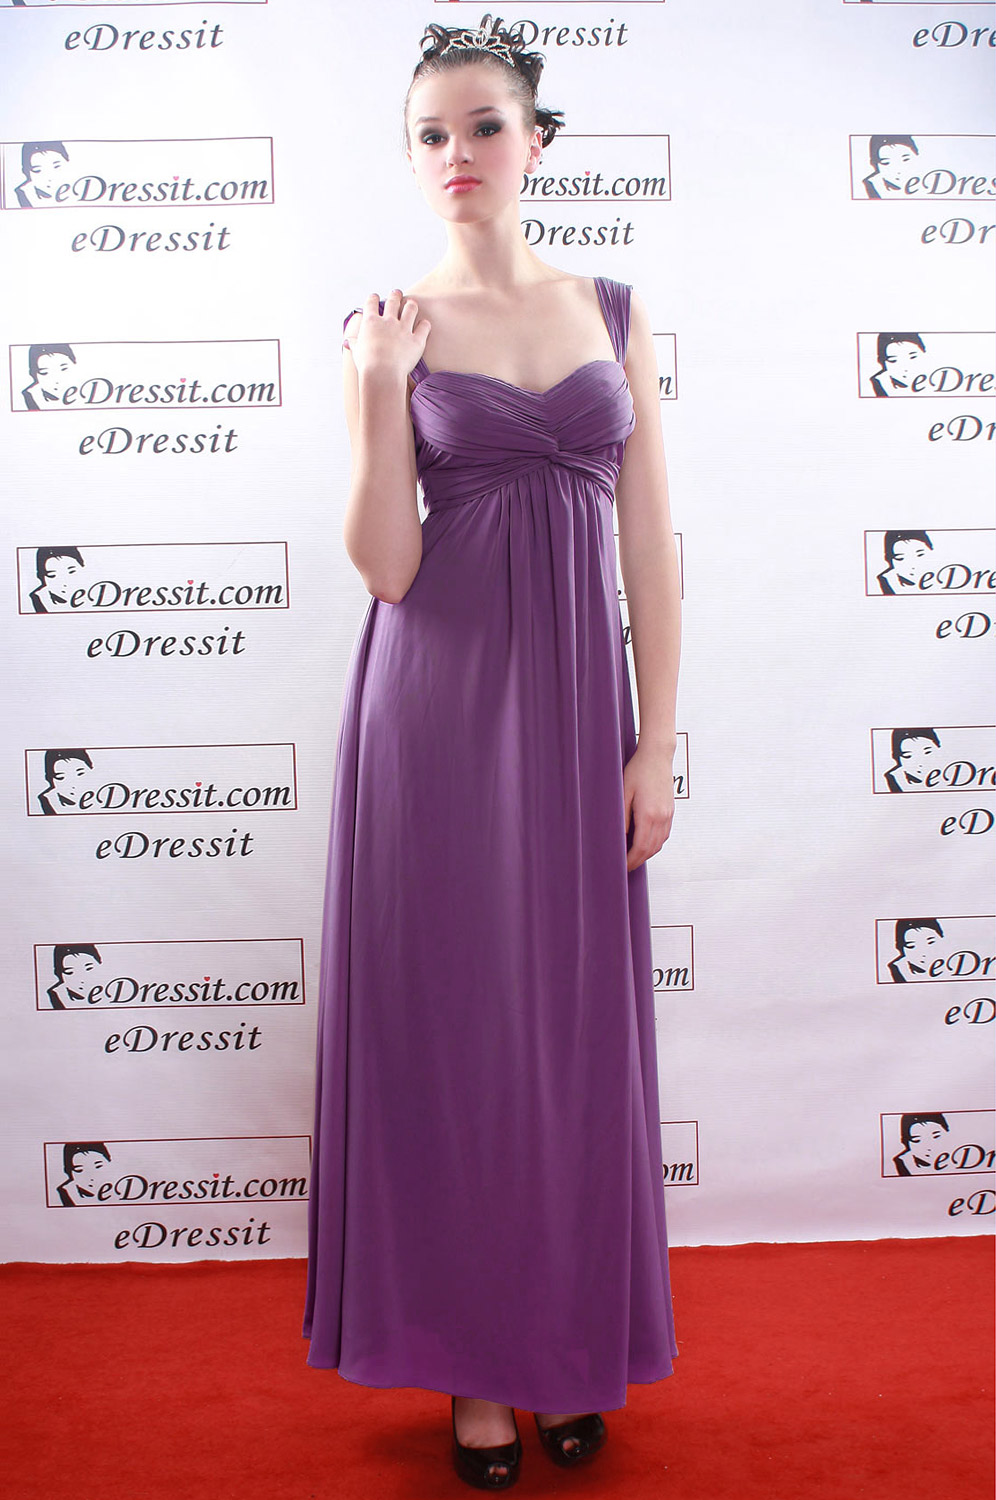 On sale !! eDressit Purple  Prom Gown Evening Dress (00080846f)